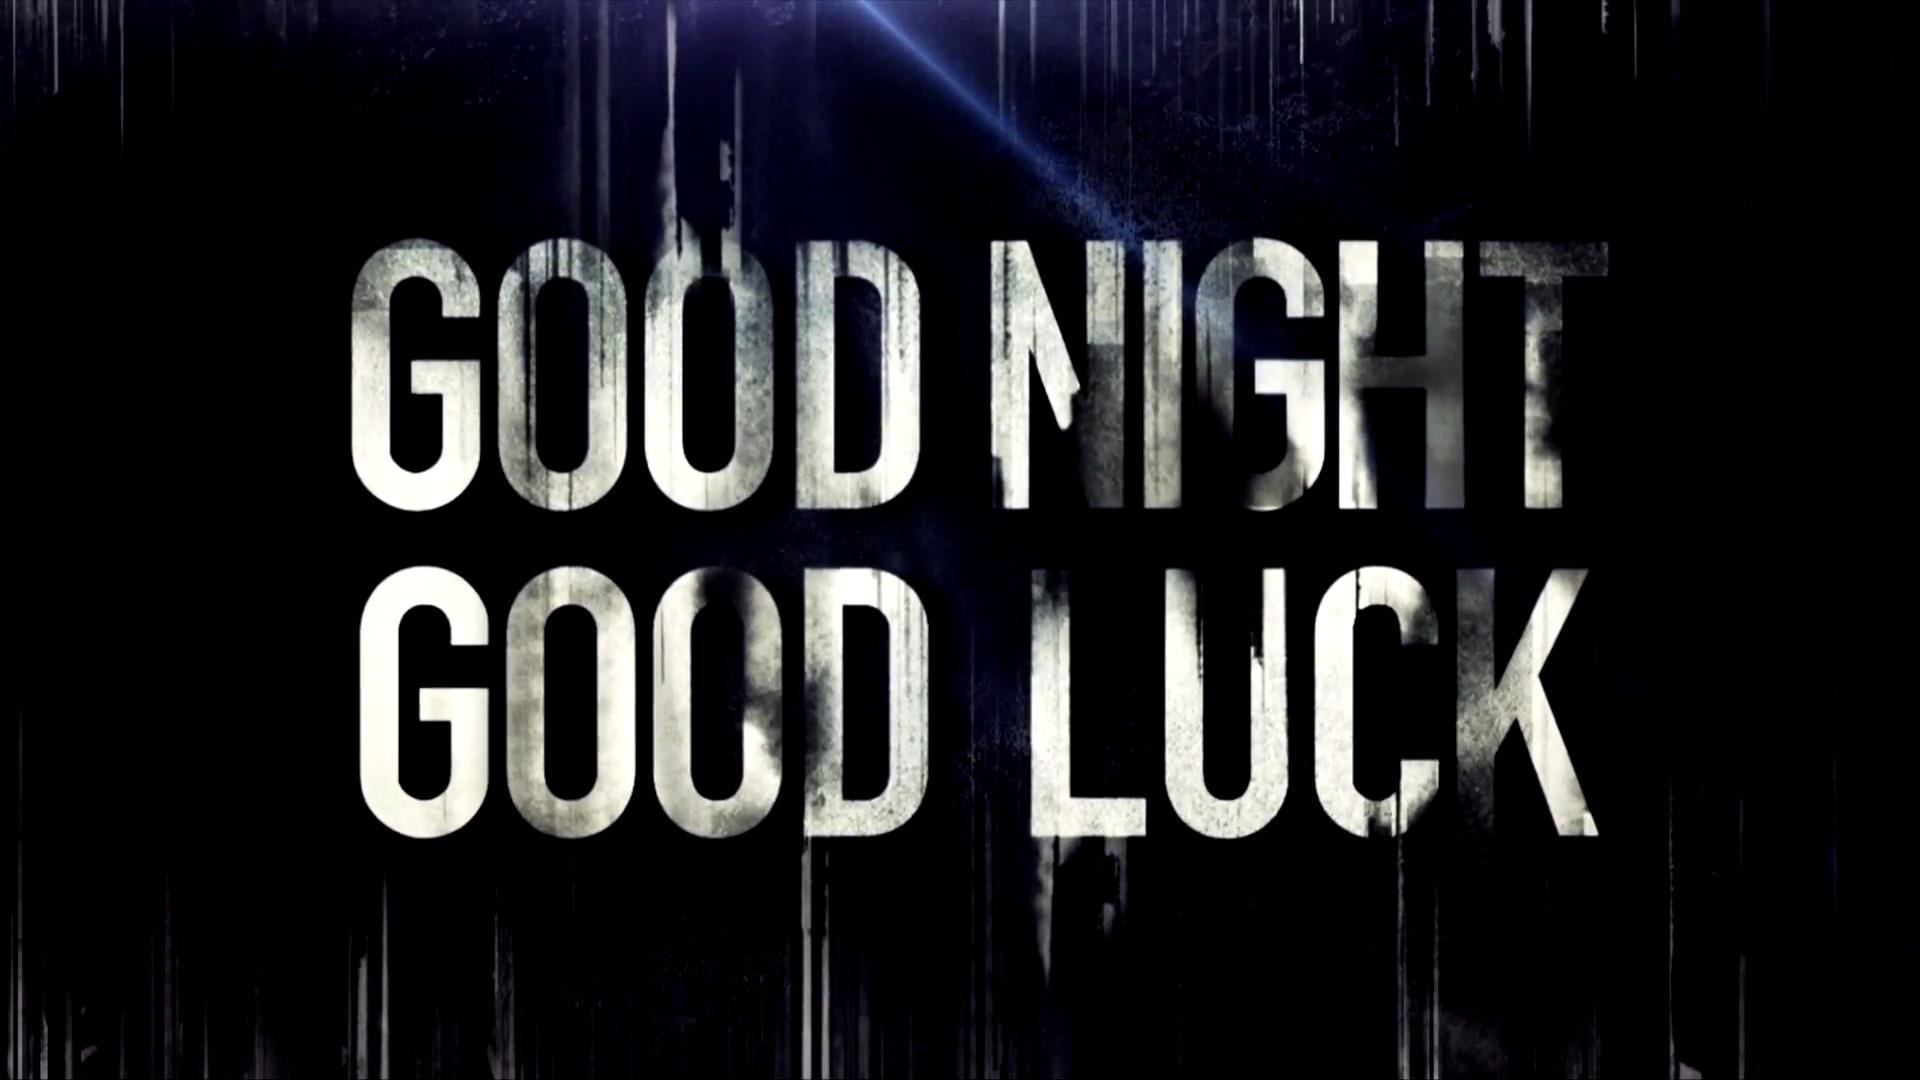 quotes about good night and good luck